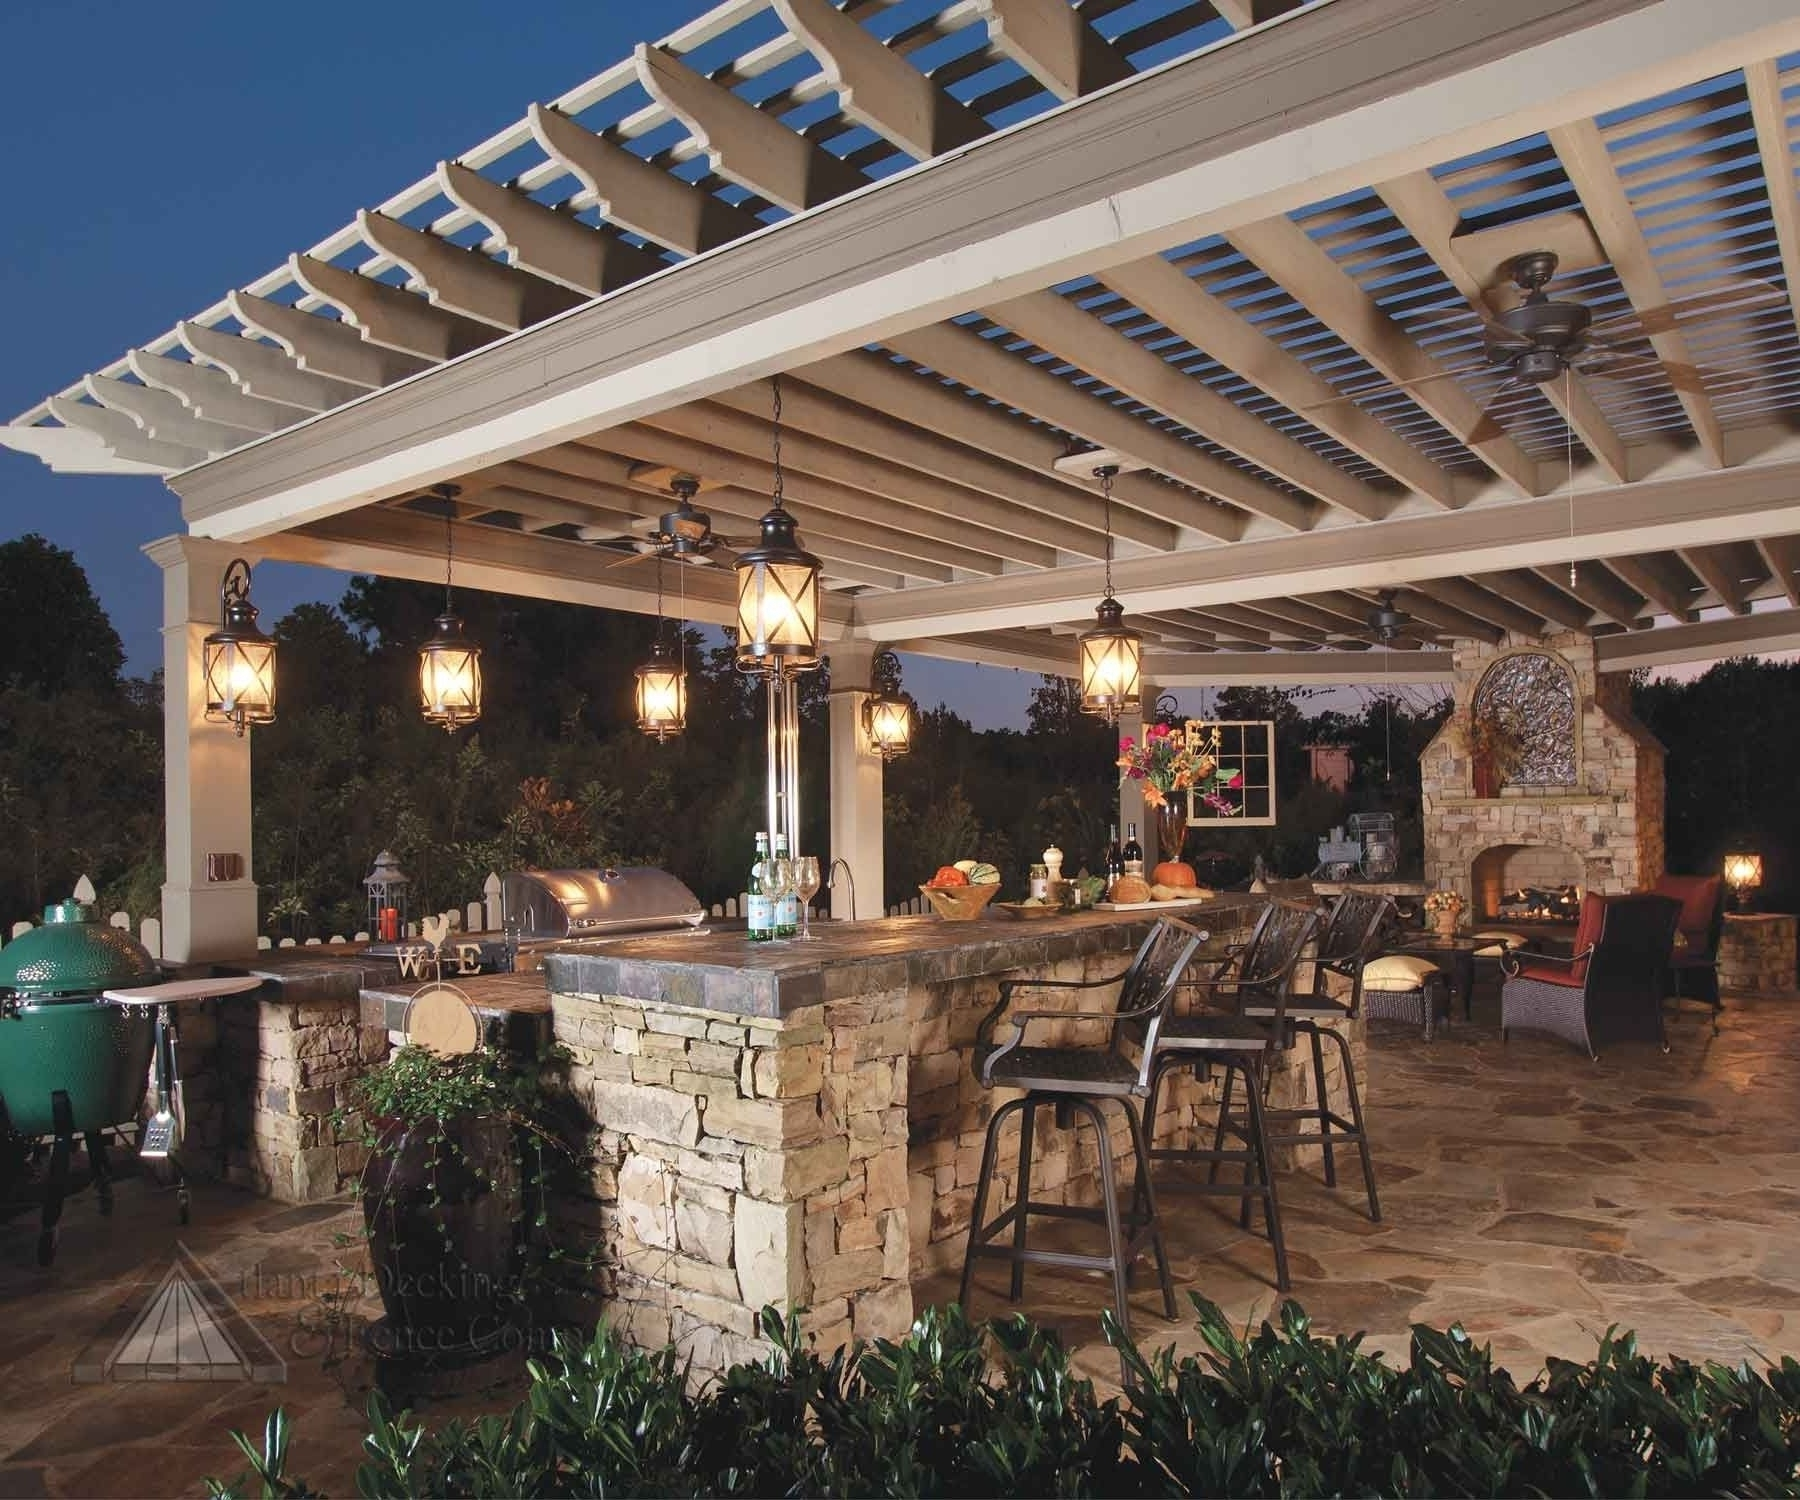 Outdoor Lighting Hanging Fixtures — Bistrodre Porch And Landscape Ideas Within Most Recently Released Outdoor Hanging Lights For Patio (View 15 of 20)